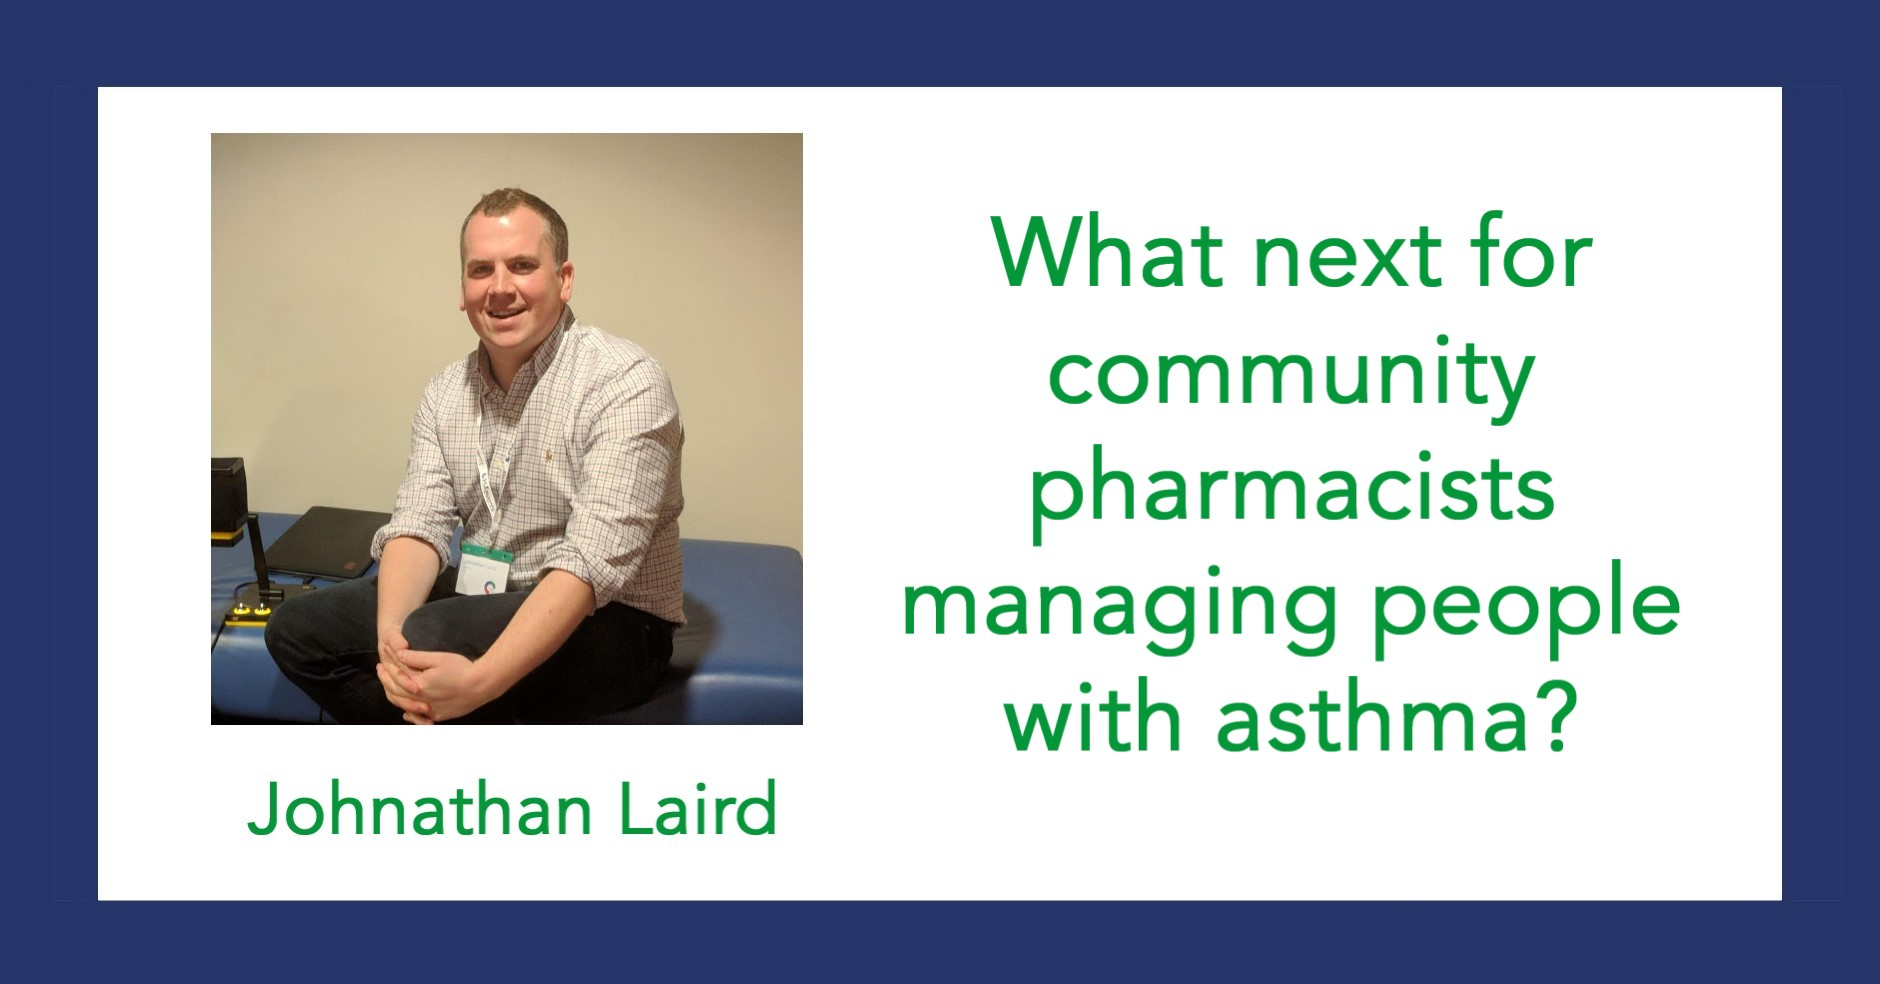 What next for community pharmacists managing people with asthma?